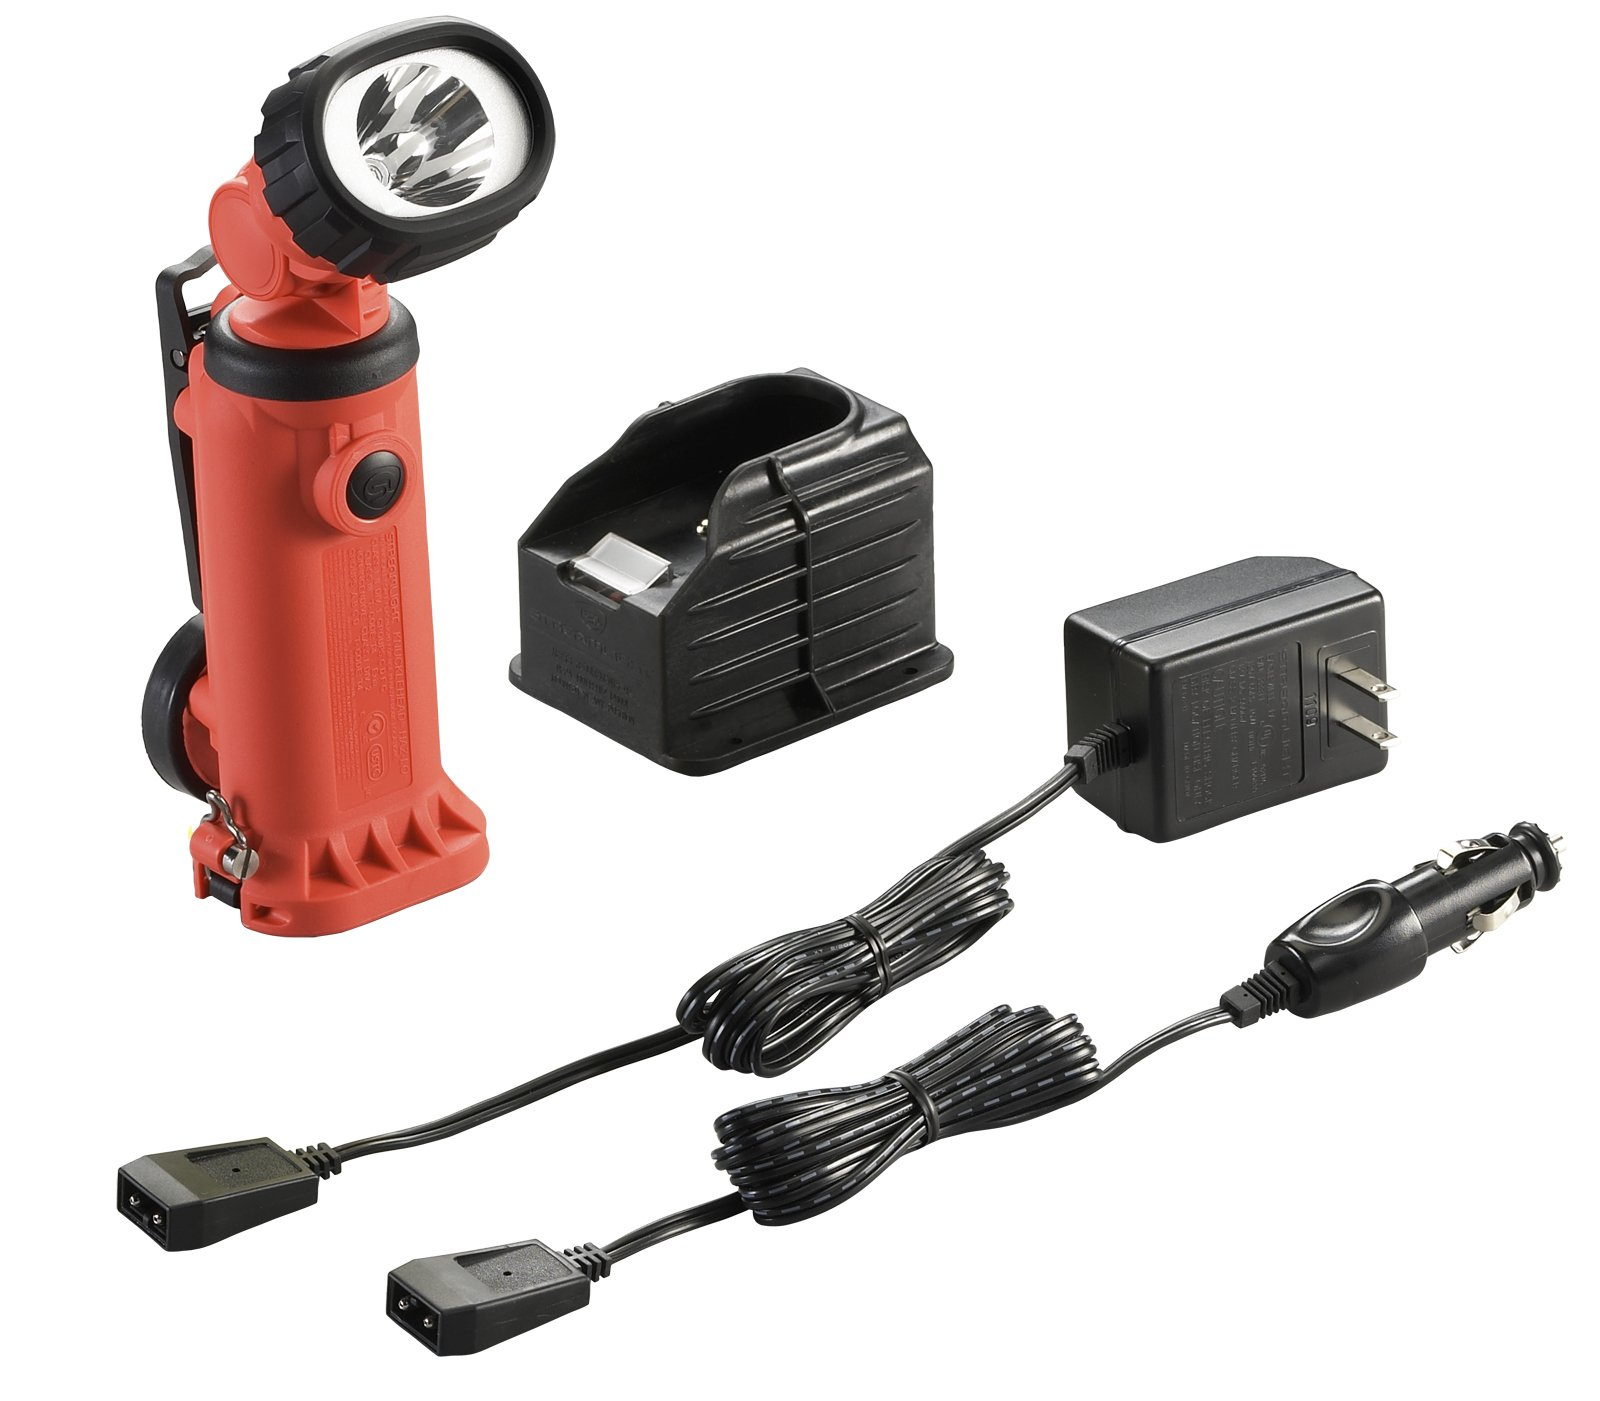 Streamlight 91757 Knucklehead HAZ-LO Rechargeable Spot Light with 120-volt AC/12-volt DC Charger, Orange by Streamlight (Image #2)